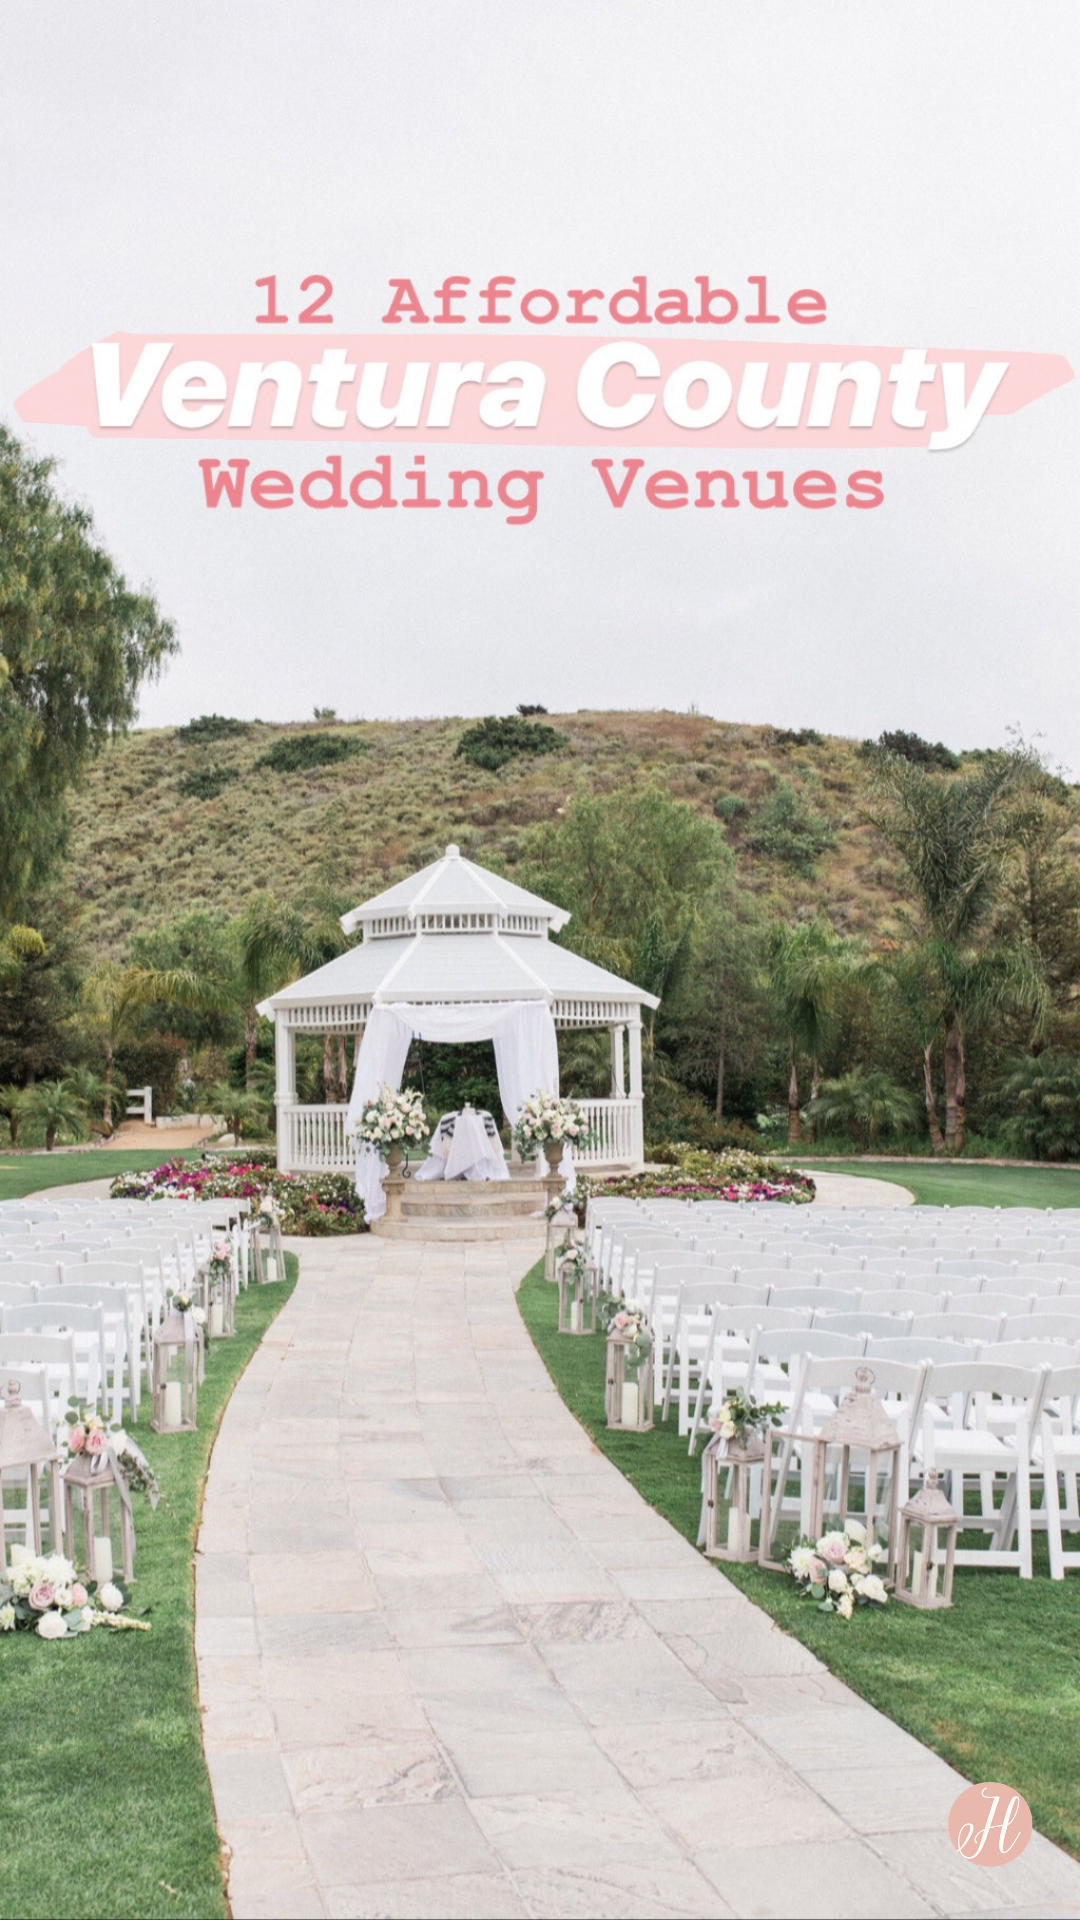 11 Affordable Ventura County Wedding Venues (With images